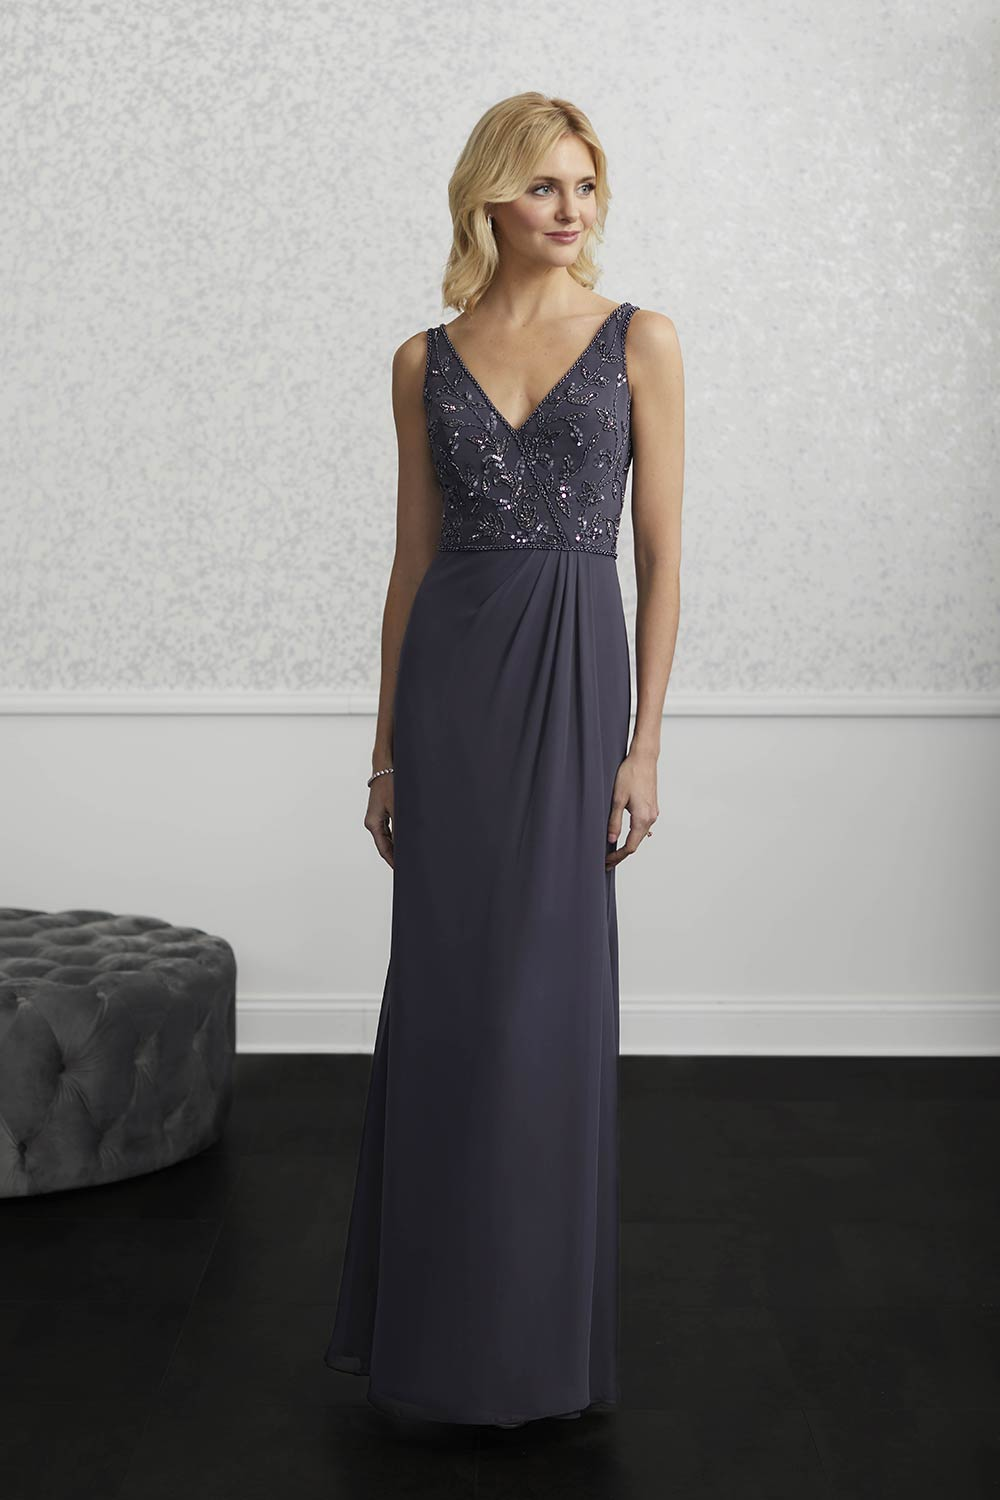 bridesmaid-dresses-jacquelin-bridals-canada-27416